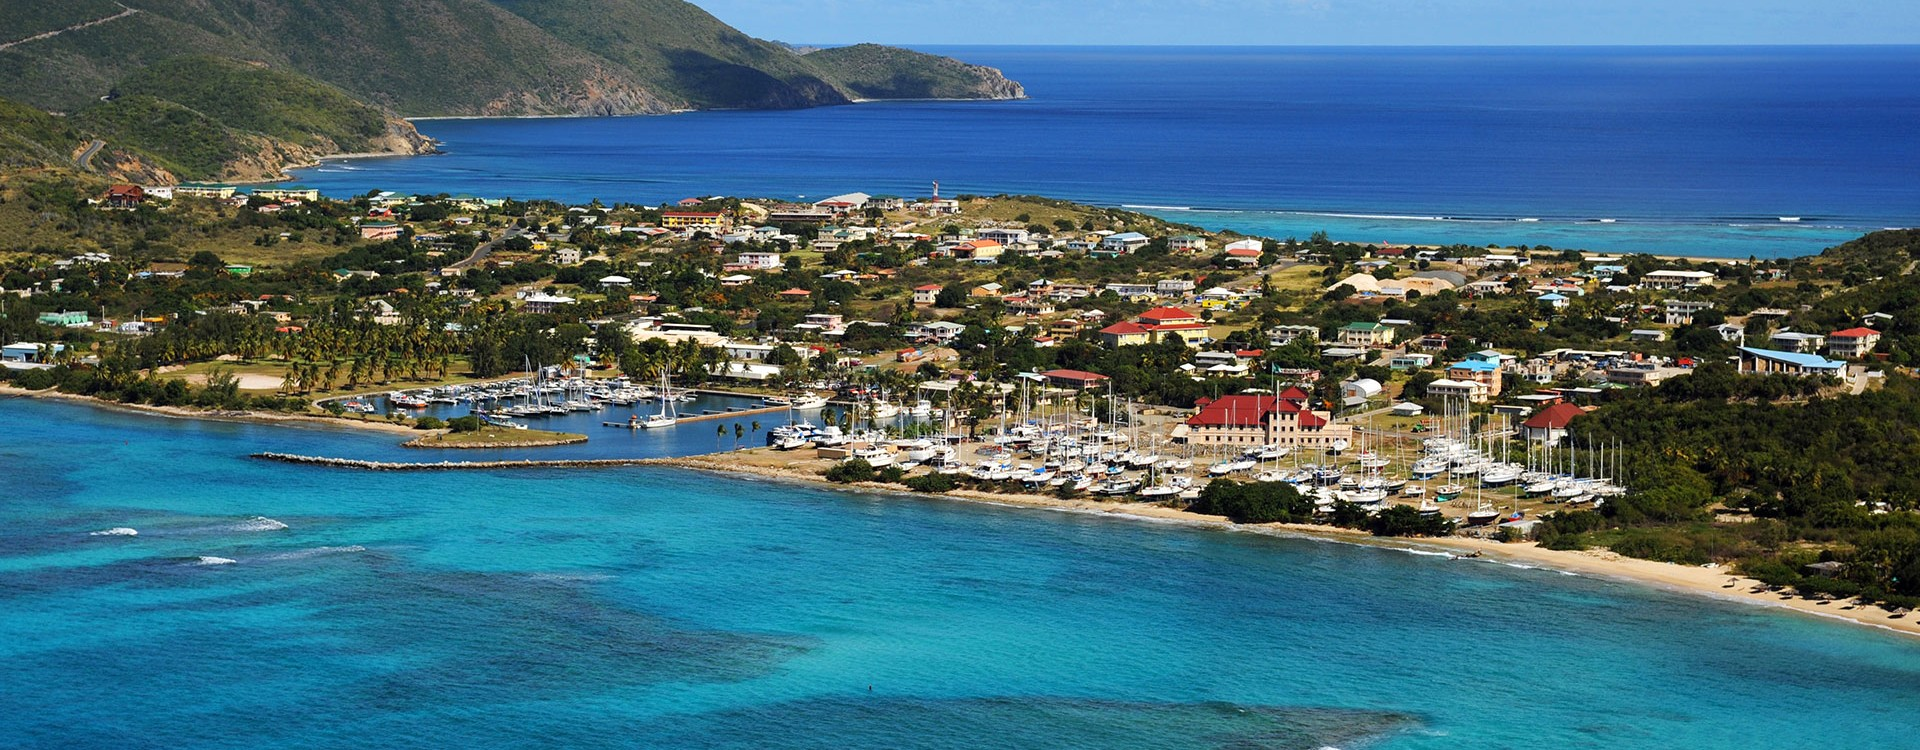 Spanish Town Virgin Gorda, M&M Apartments and Suites | Hotel reservations